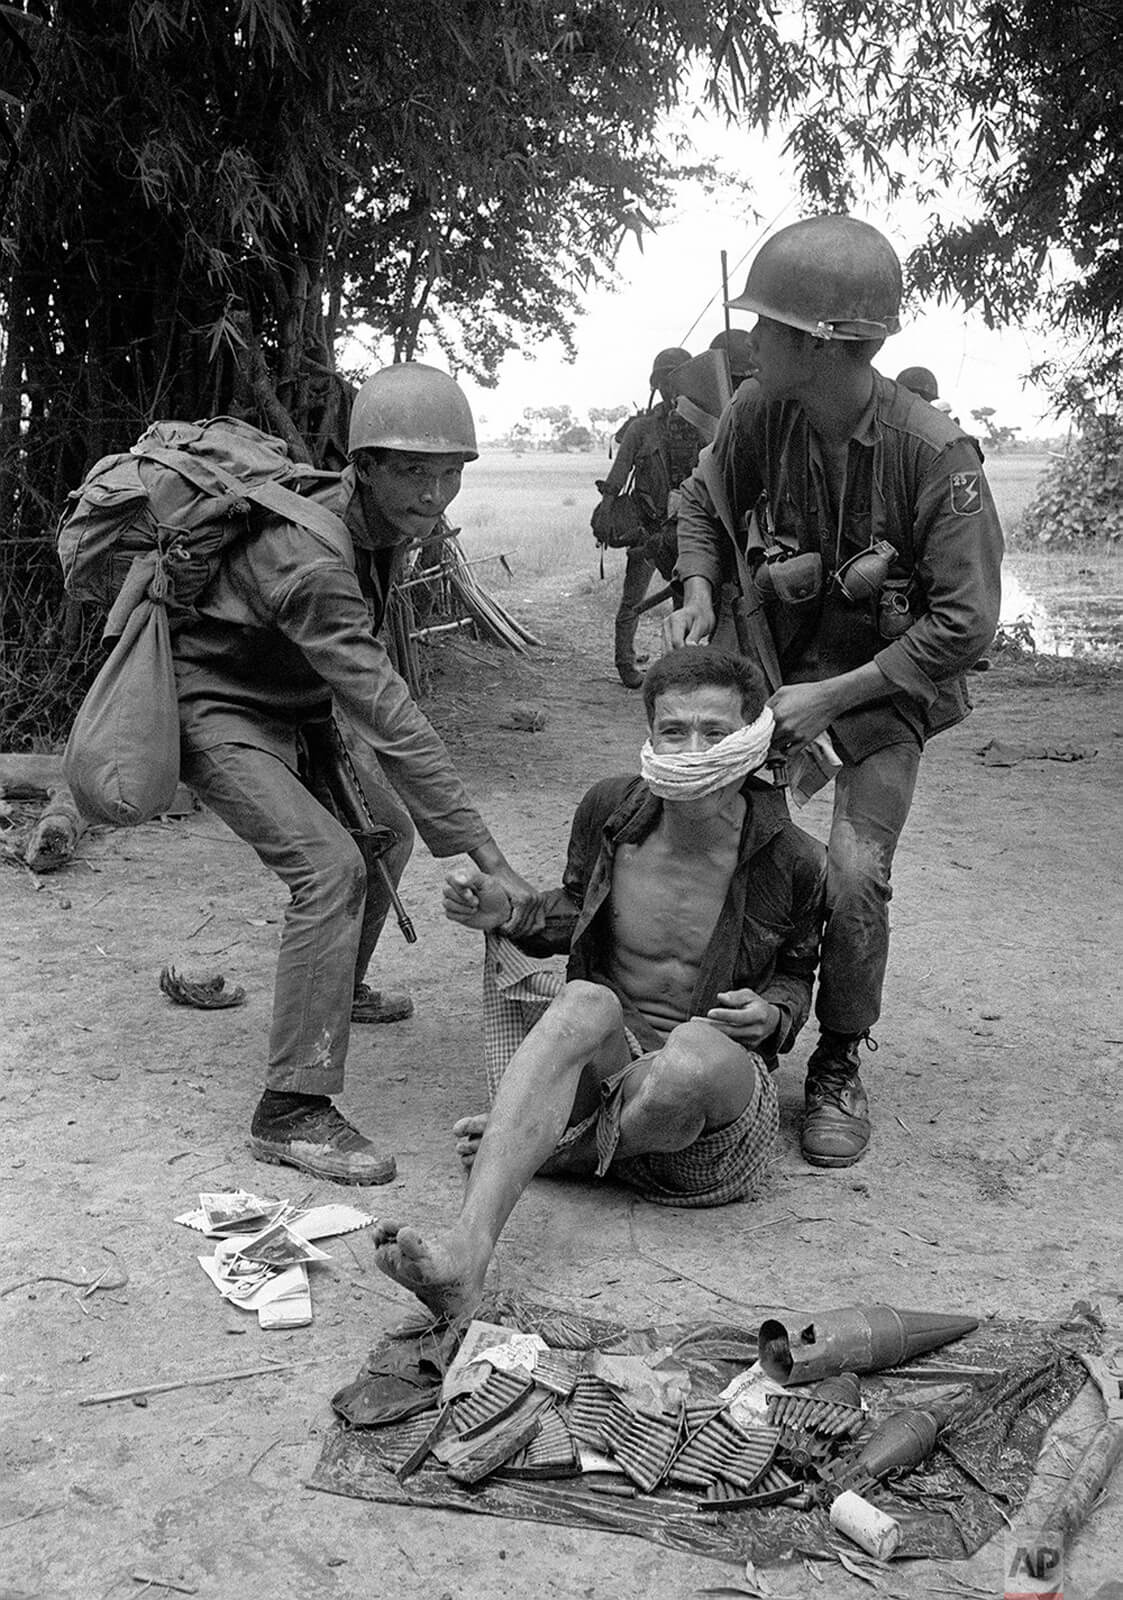 A historical photo of the Vietnam War period taken in Cambodia